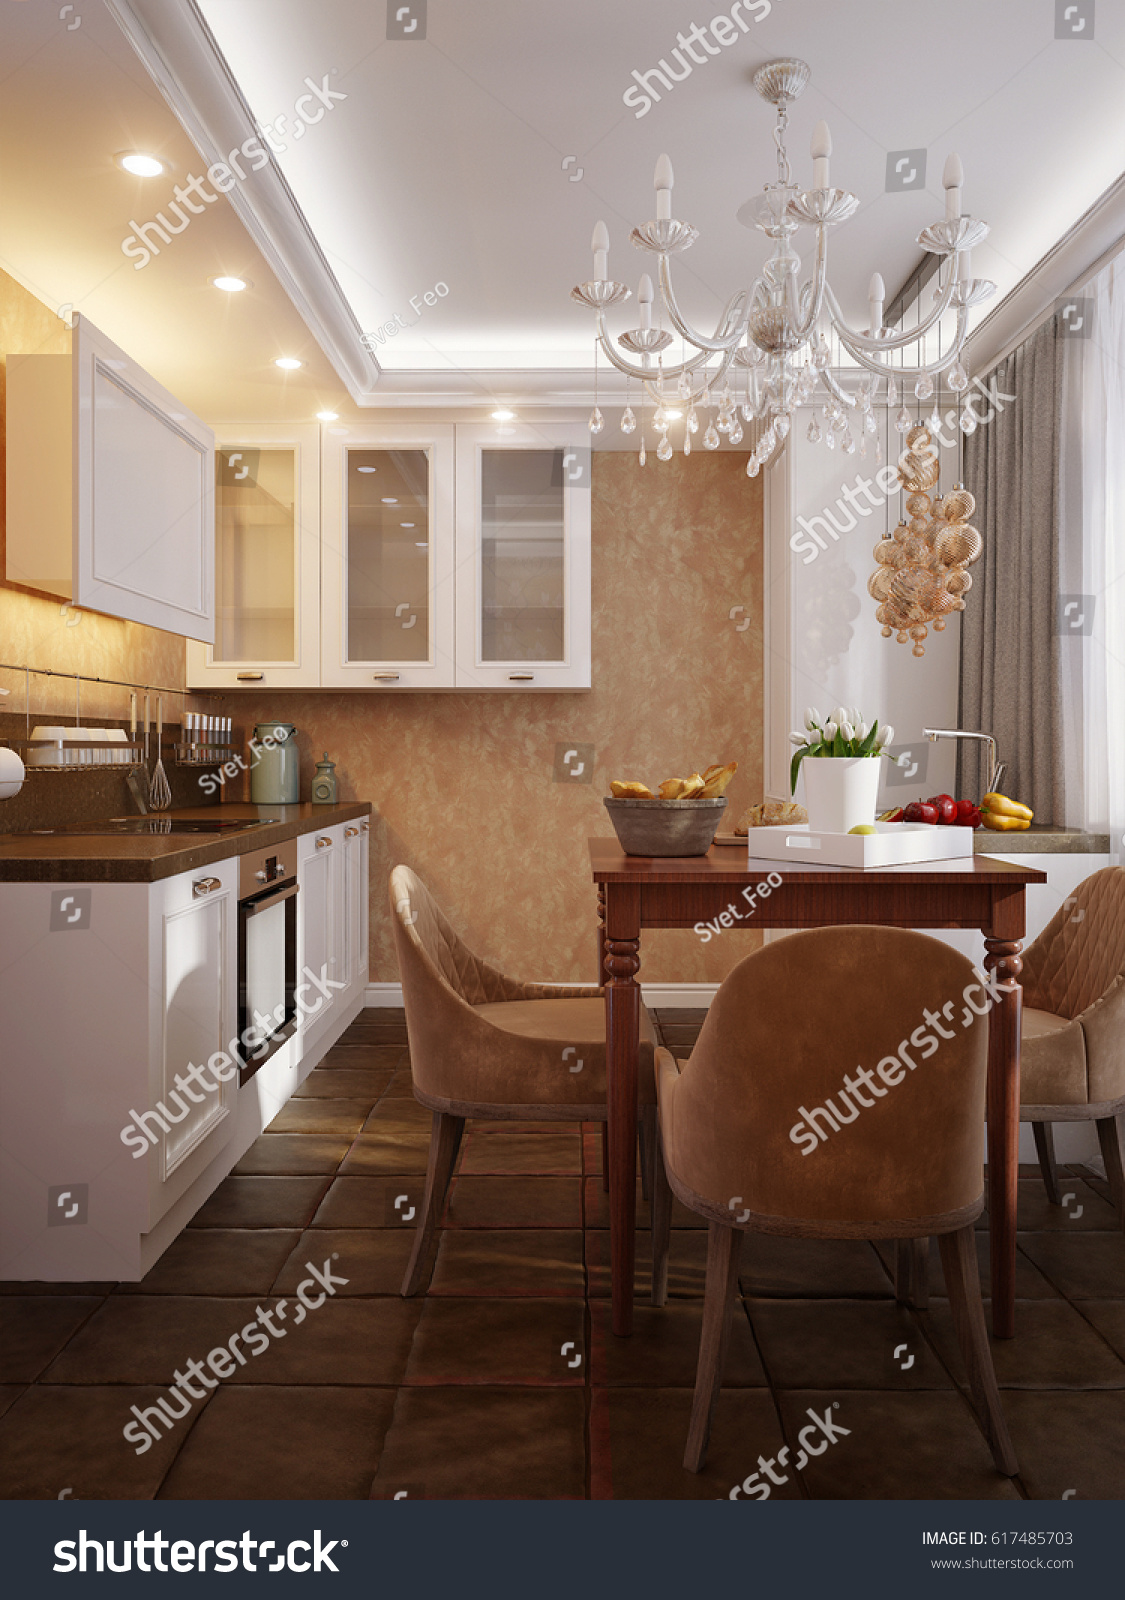 Modern kitchen interior design white facades stock illustration modern kitchen interior design with white facades dark brown tile floor and dining area dailygadgetfo Image collections